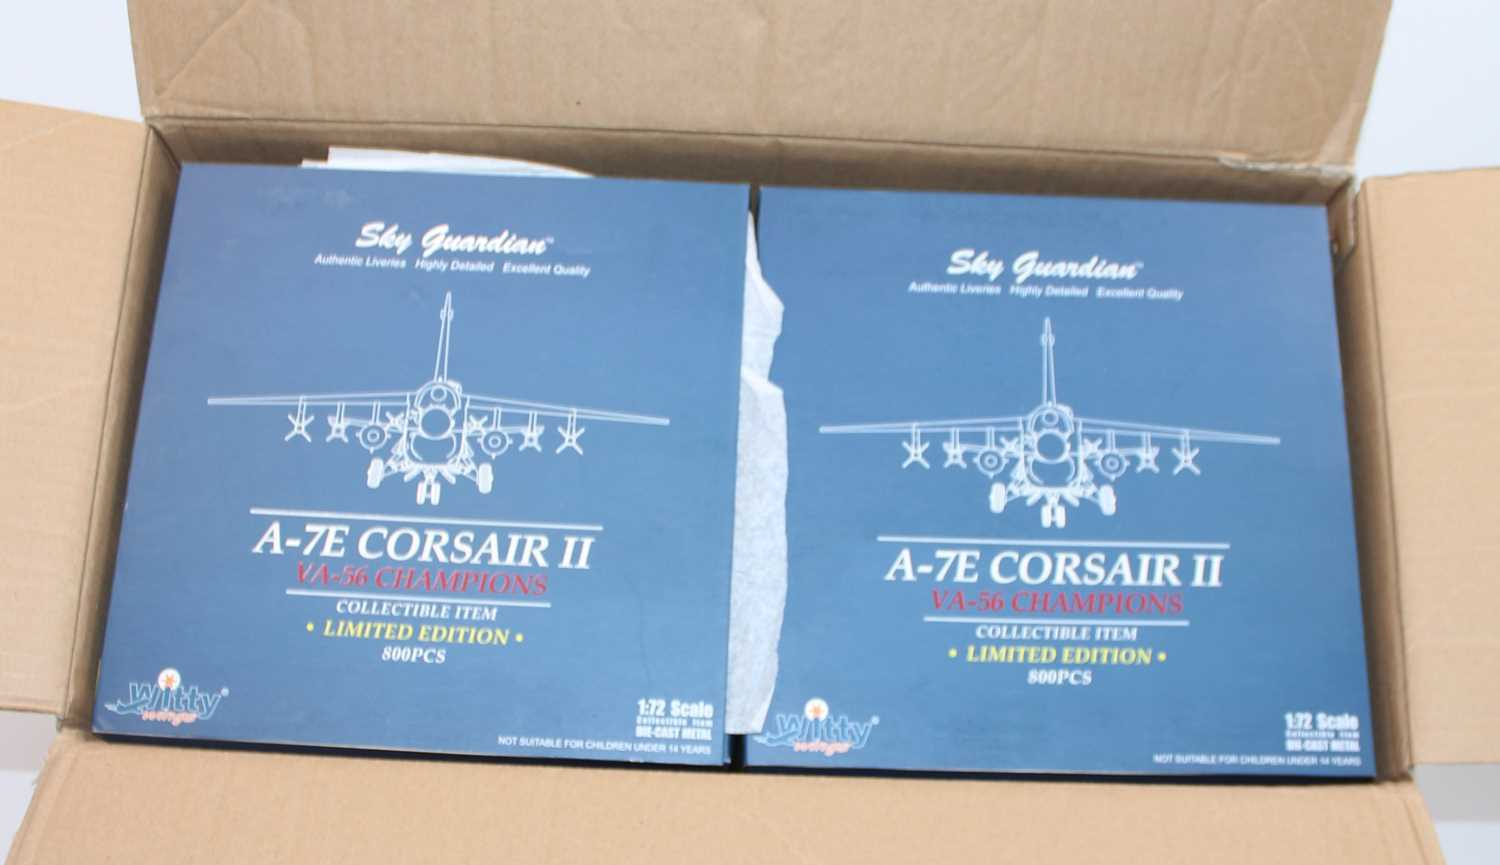 A Sky Guardians/Witty Wings, trade box of six limited edition 1:72 scale A-7E Corsair II VA-56